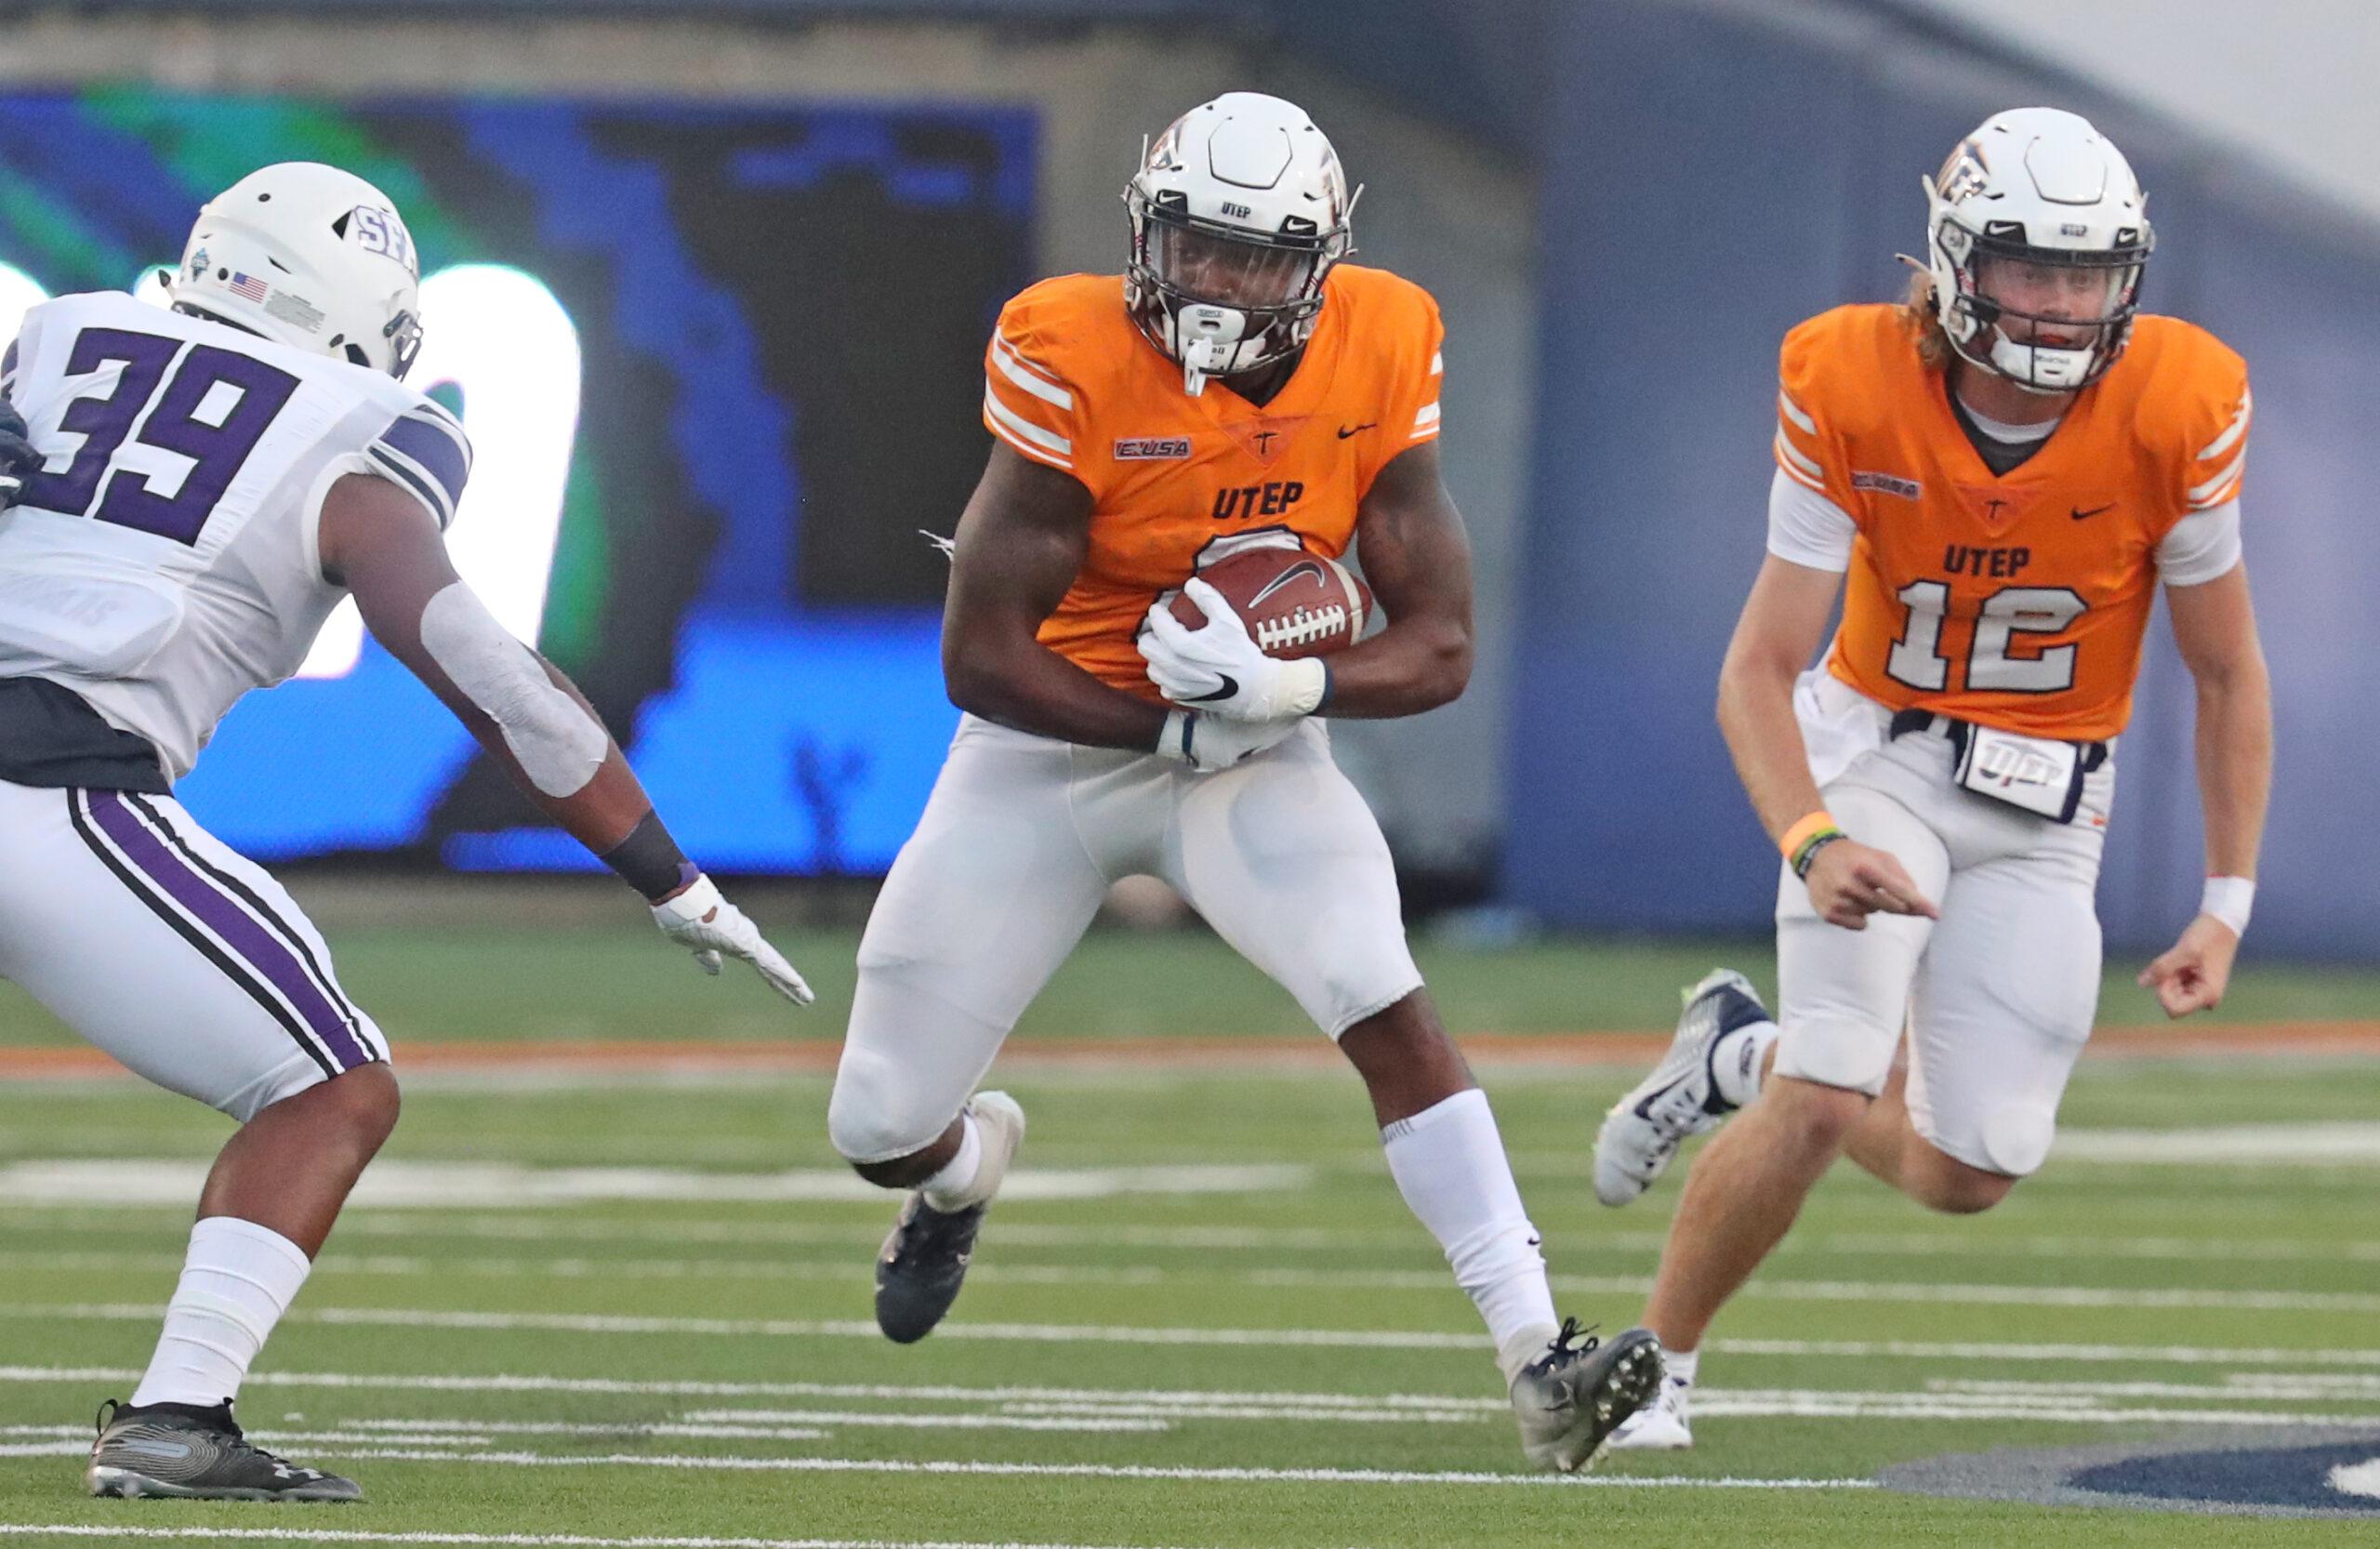 Quardraiz Wadley | Photo by Ruben R. Ramirez/UTEP Athletics